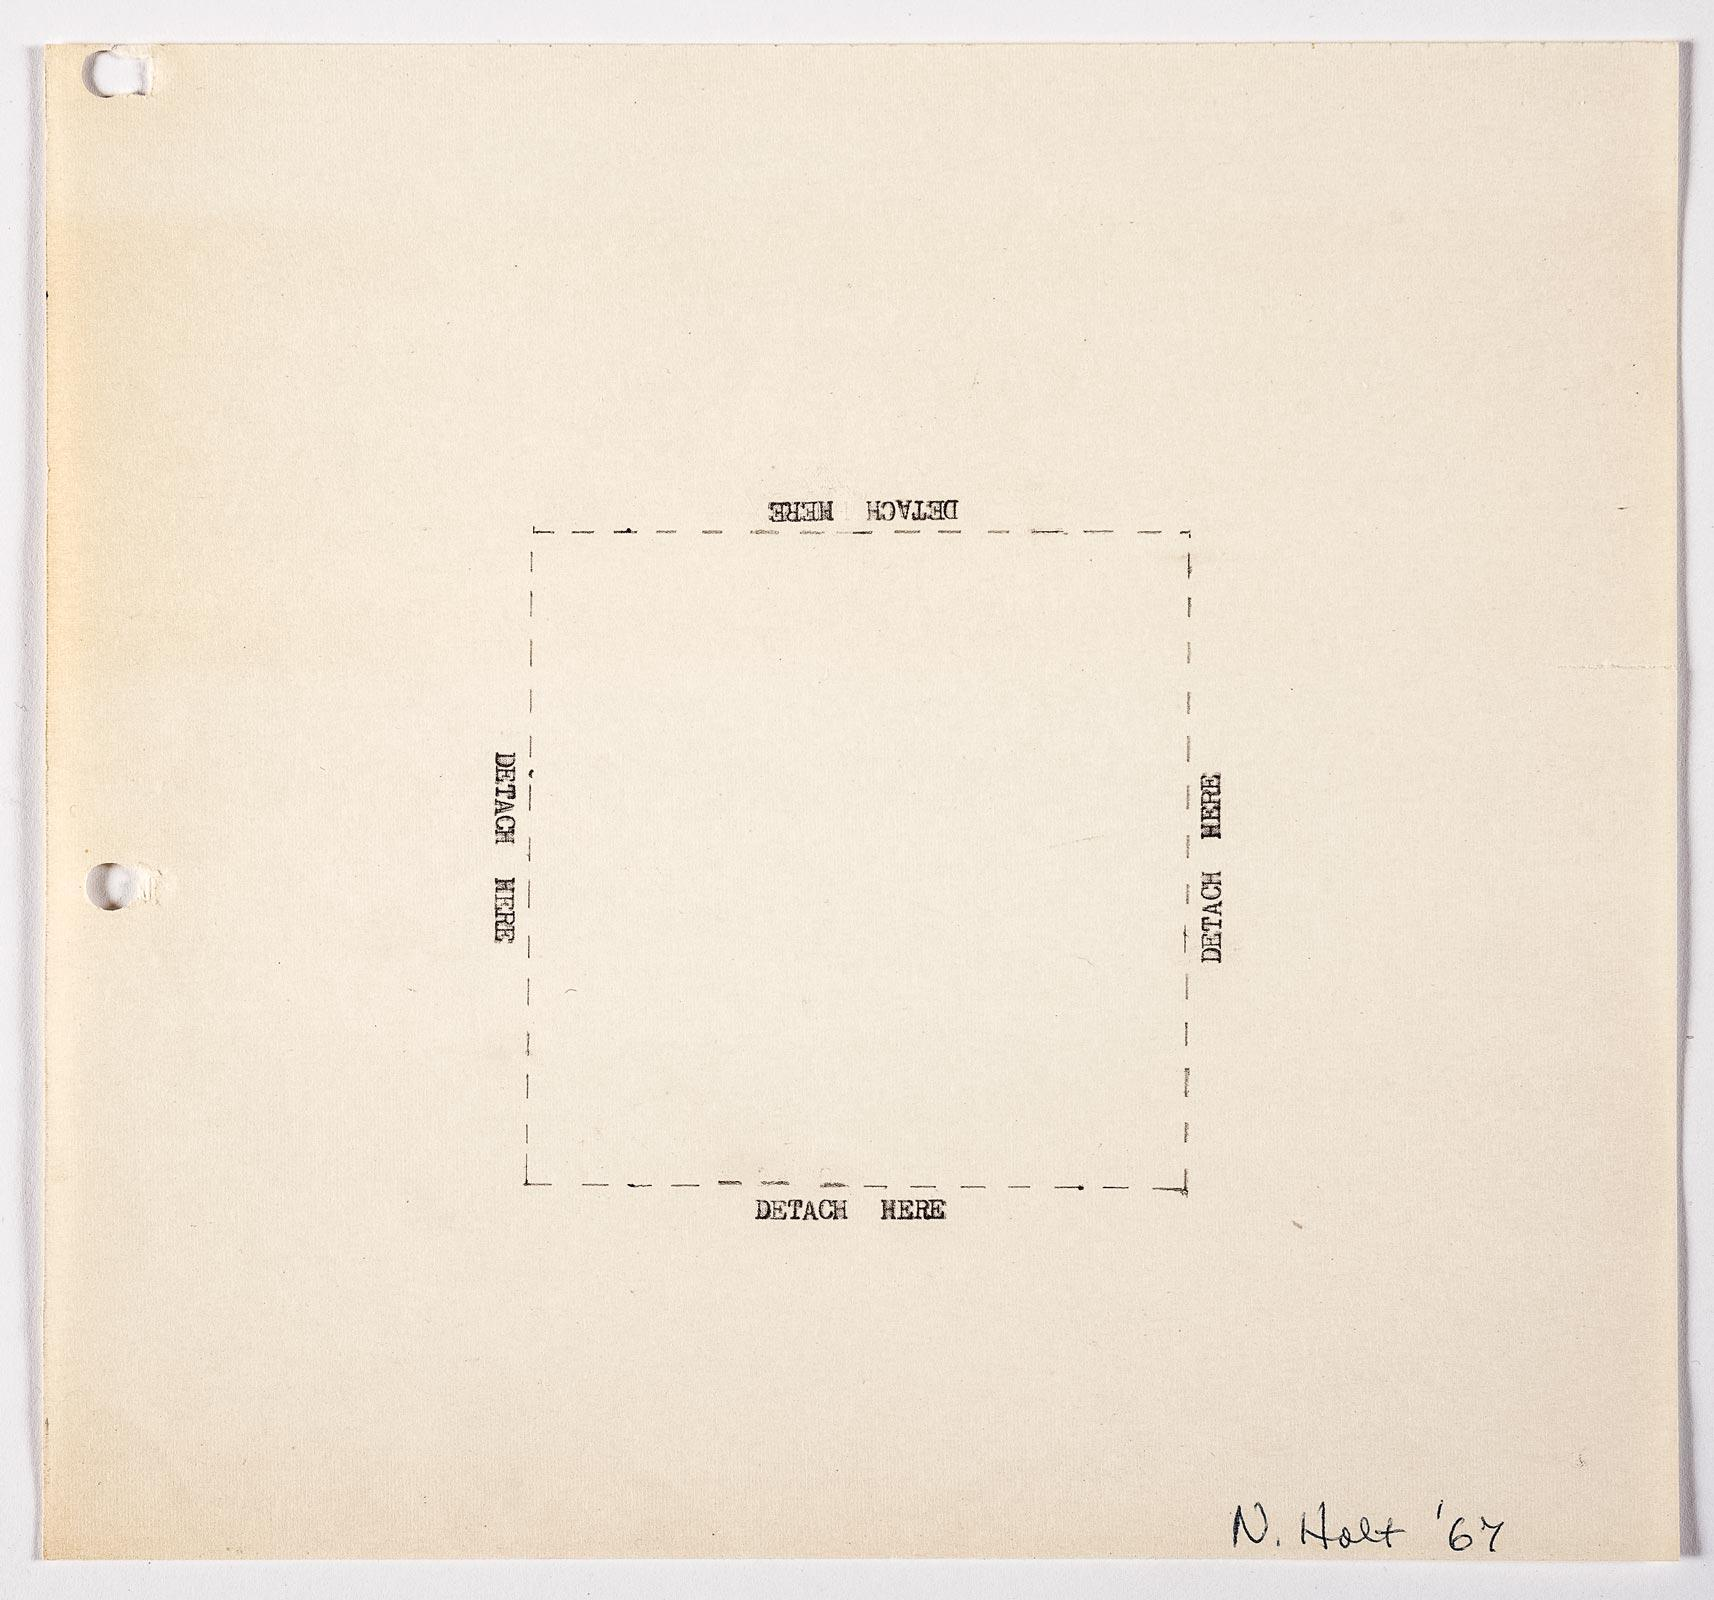 "A work done on typewriter with a dashed line forming a square in the middle of the page . Each side of the square has the words ""detrach here"" typed above them."